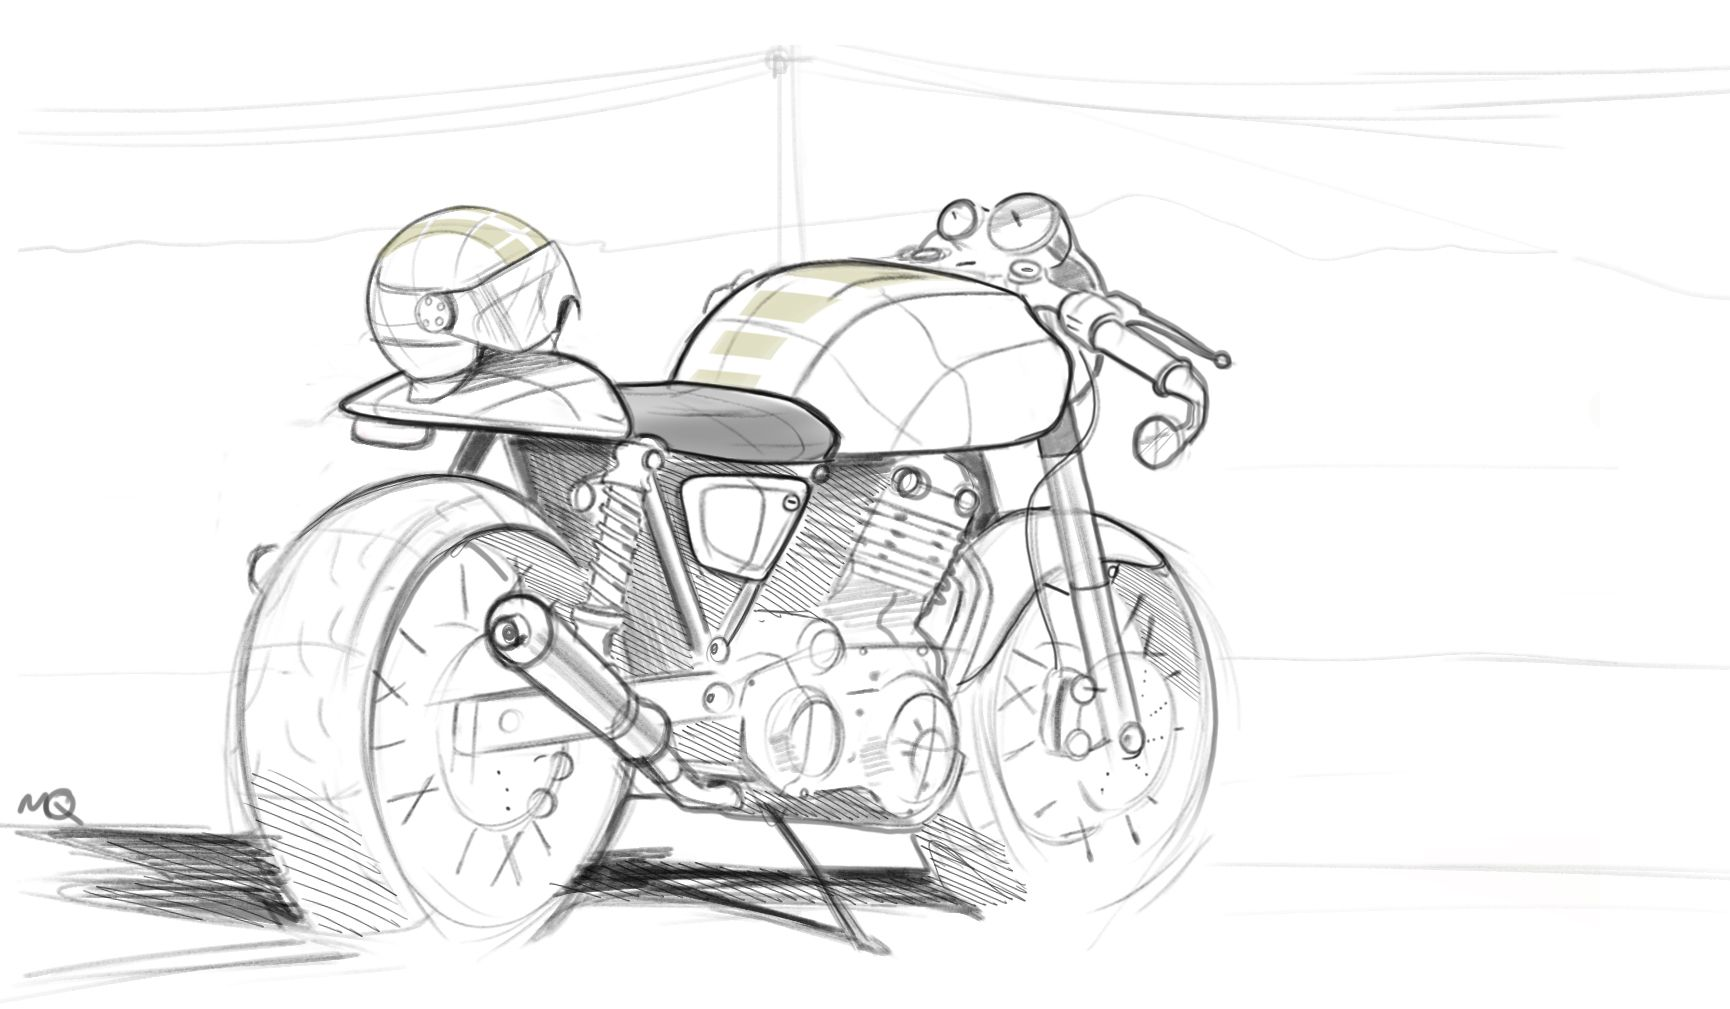 Sketch Of A Cafe Racer My Sketches Pinterest Motorcycle Design